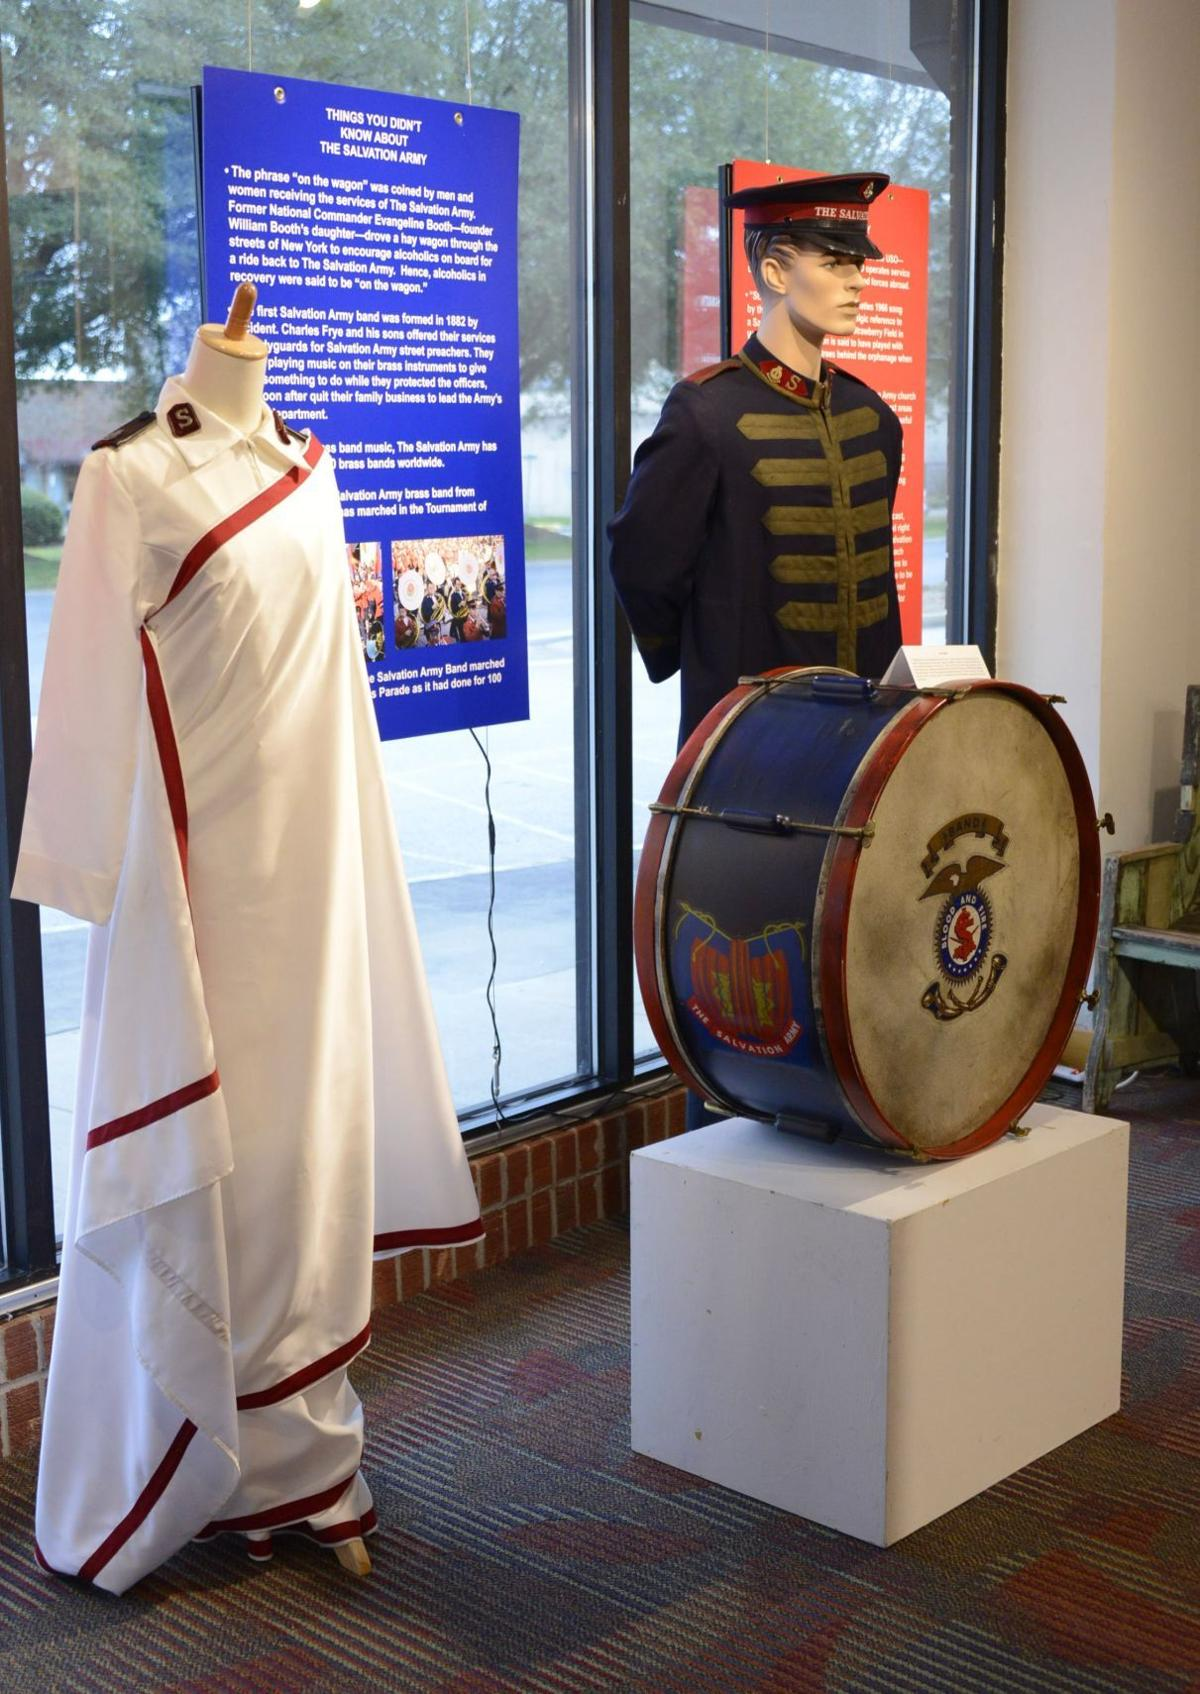 Salvation Army officers have ranks of military officers and uniforms.